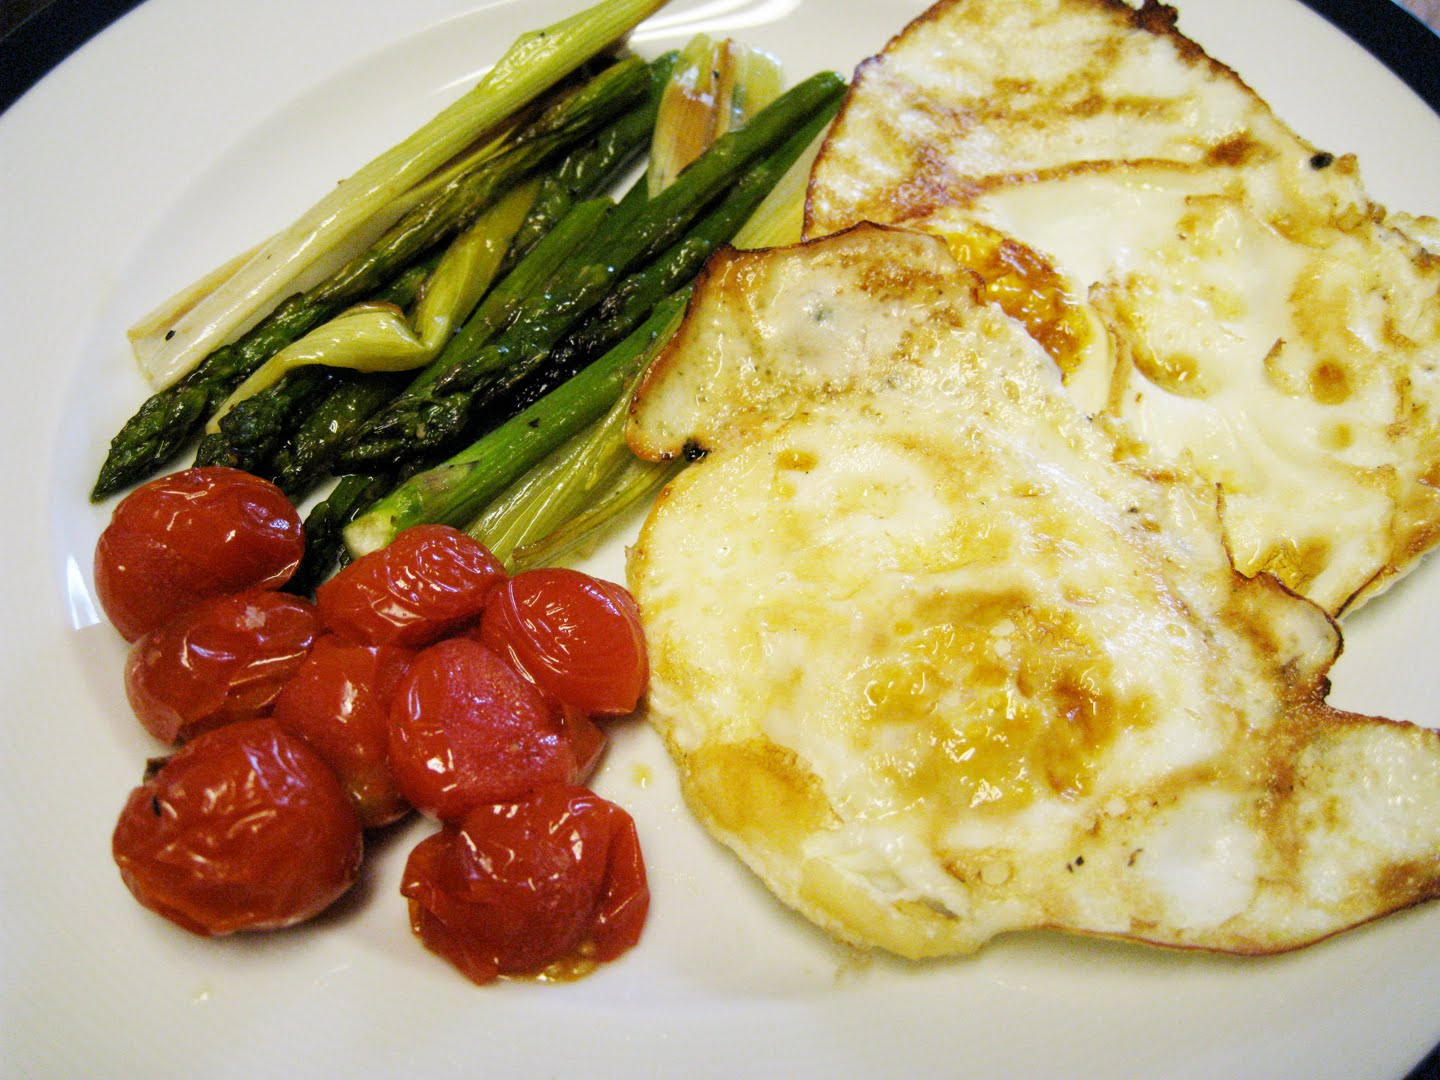 ... chaser: Fried Egg with Roasted Cherry Tomatoes, Asparagus, and Leeks